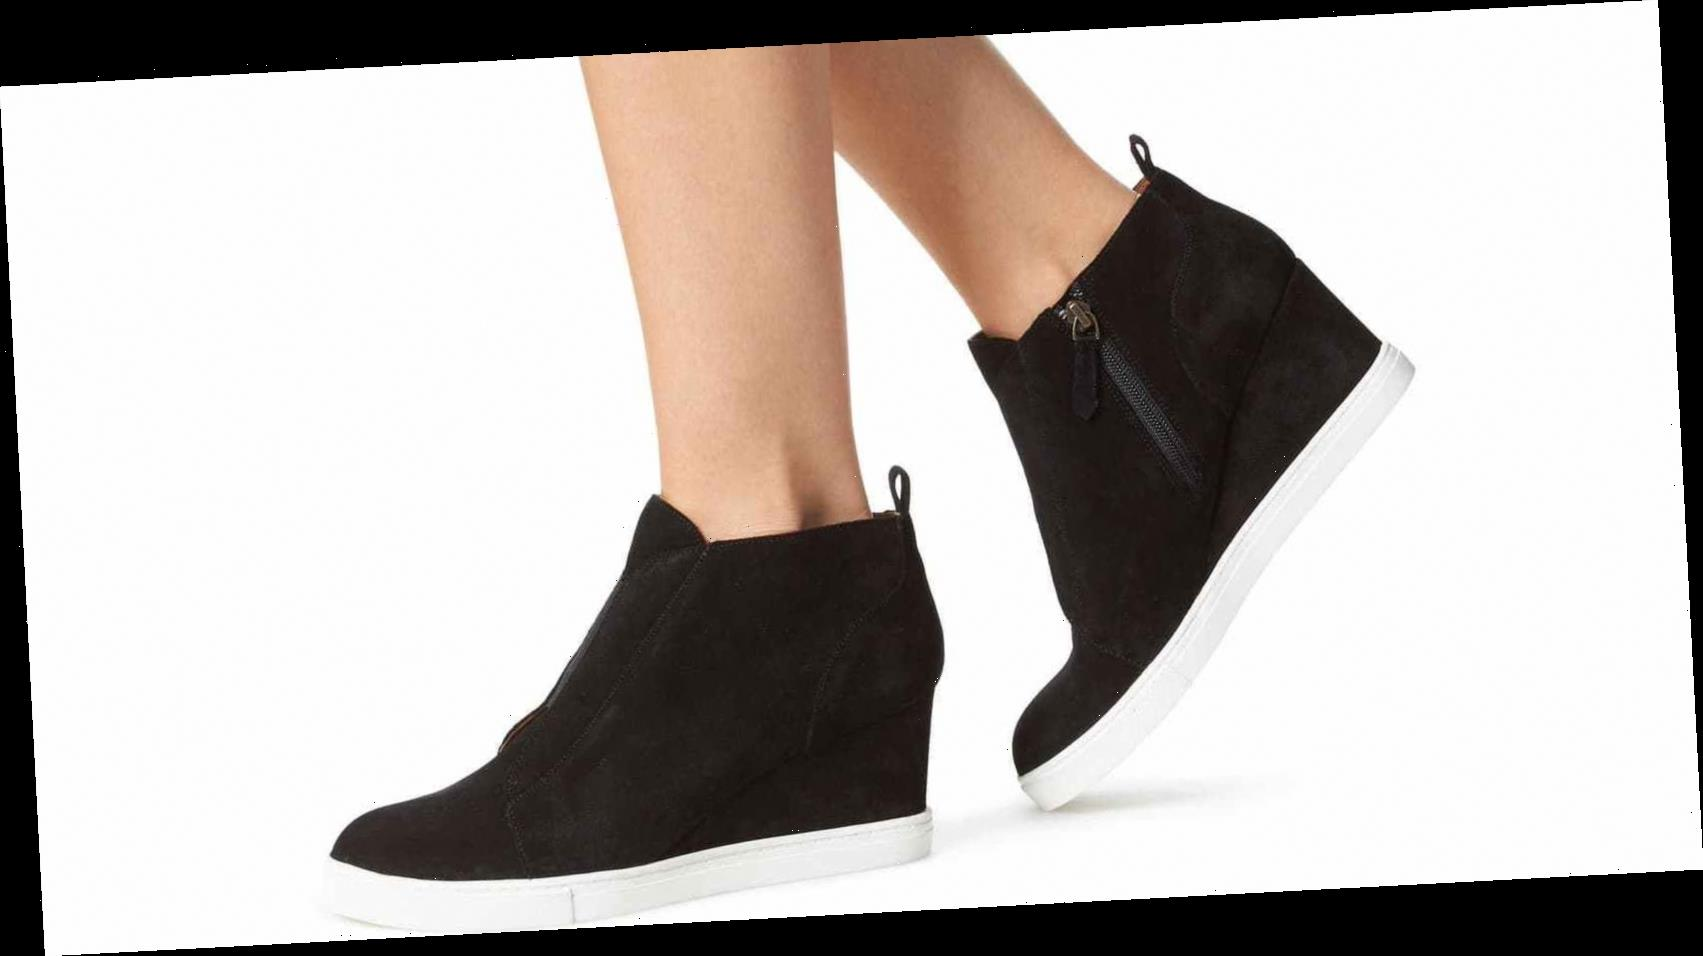 Our Favorite Wedge Booties Are Now Available in Stylish Winter Colors